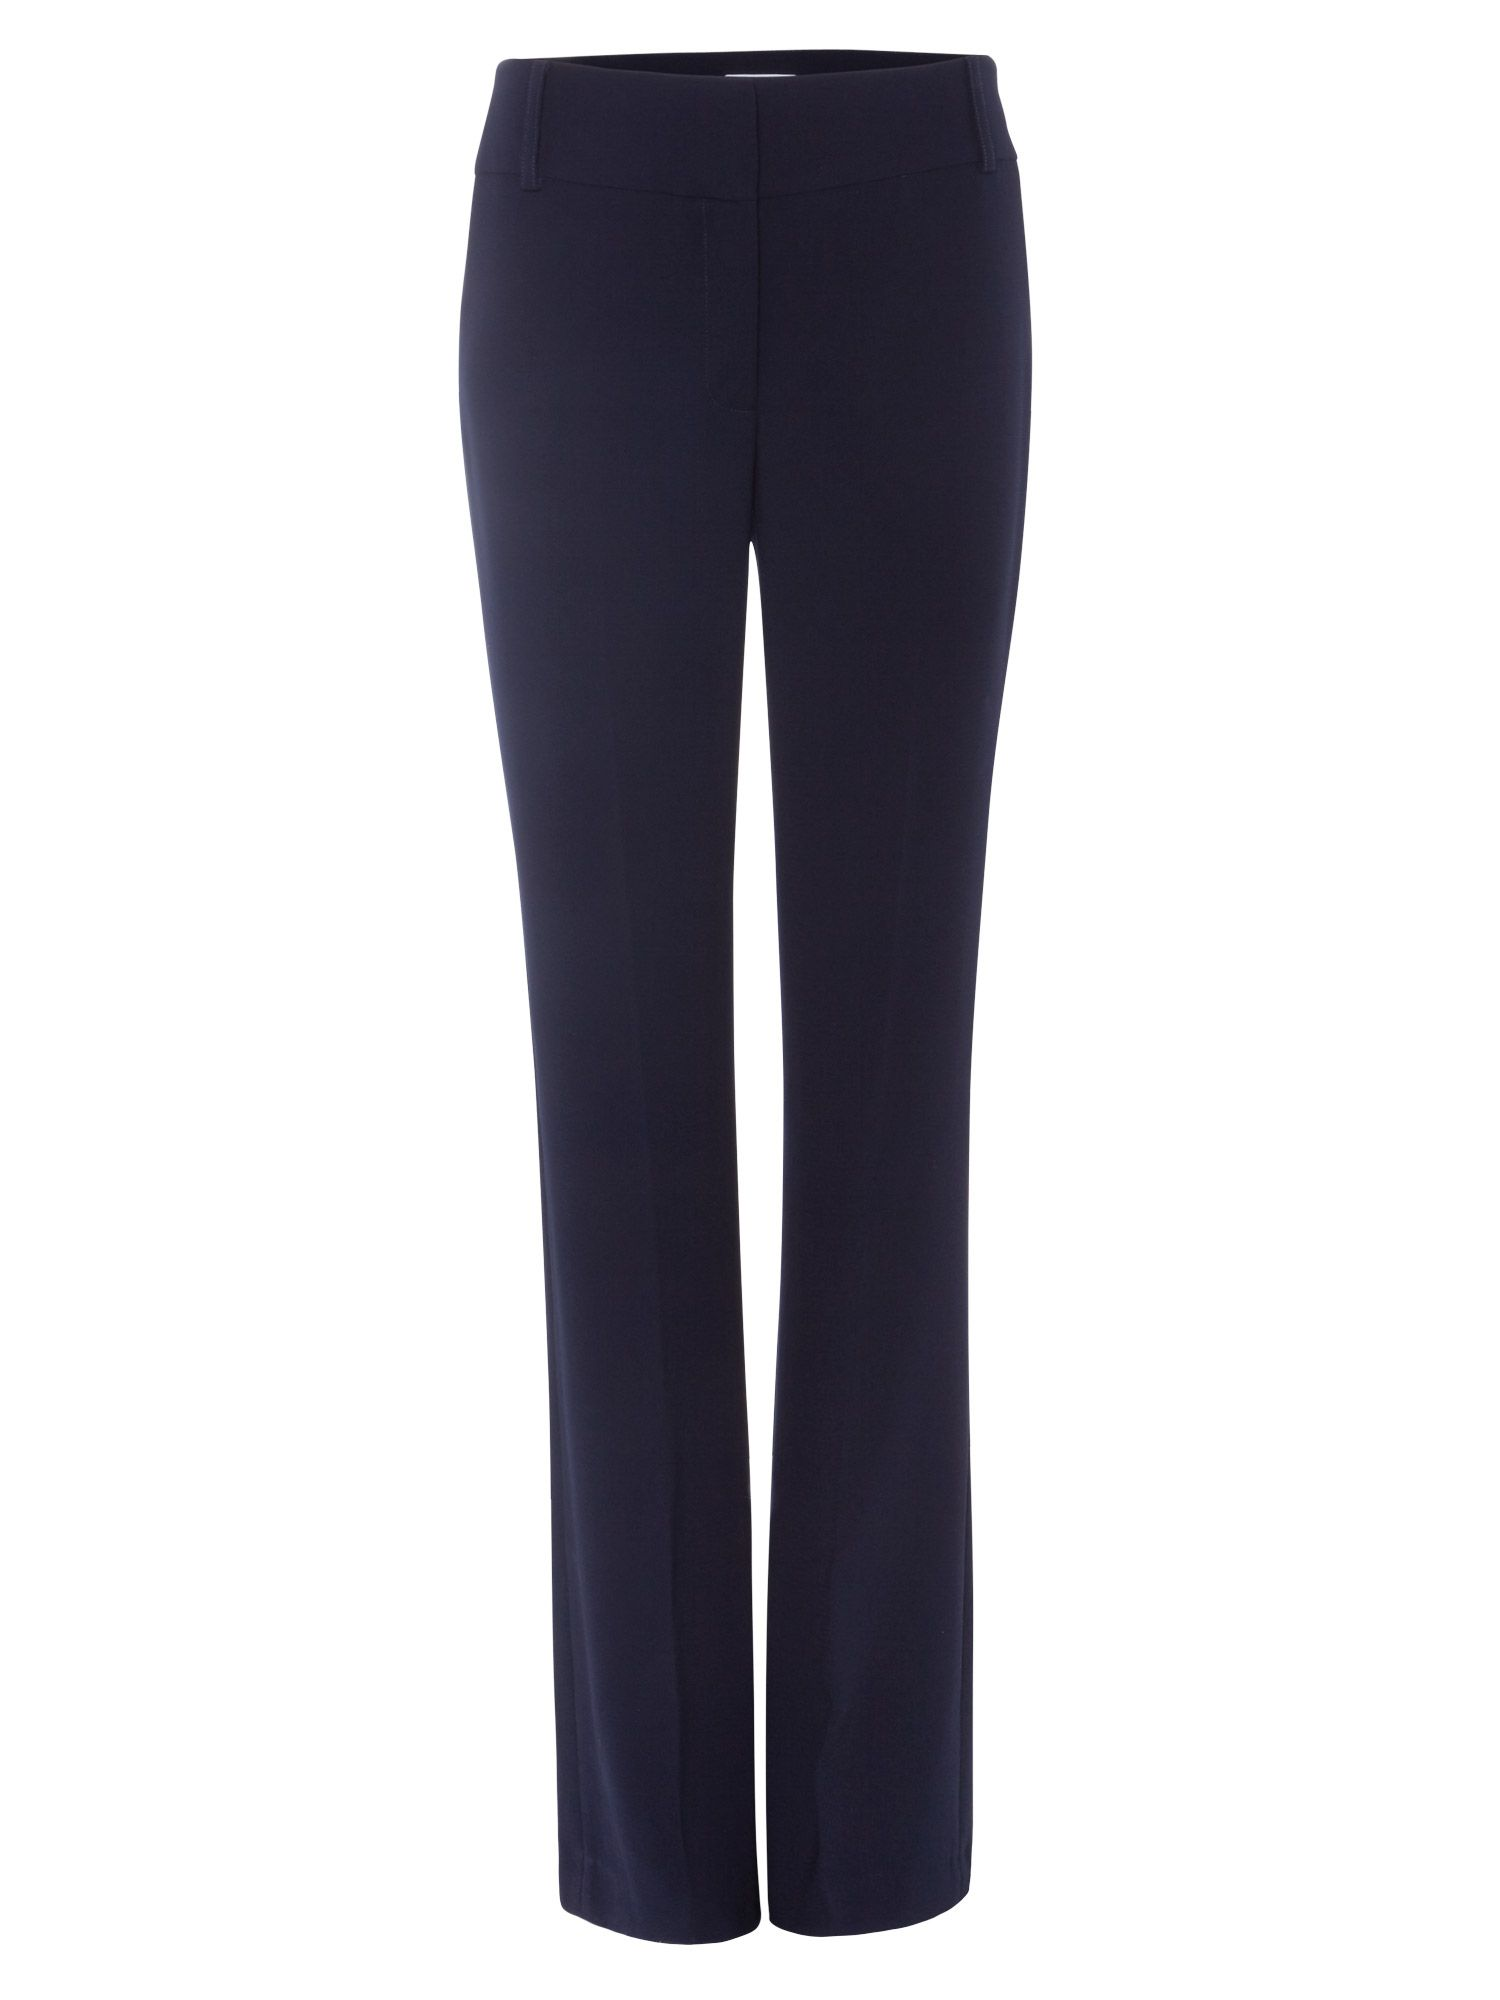 Damsel in a Dress City Suit Trousers, Blue